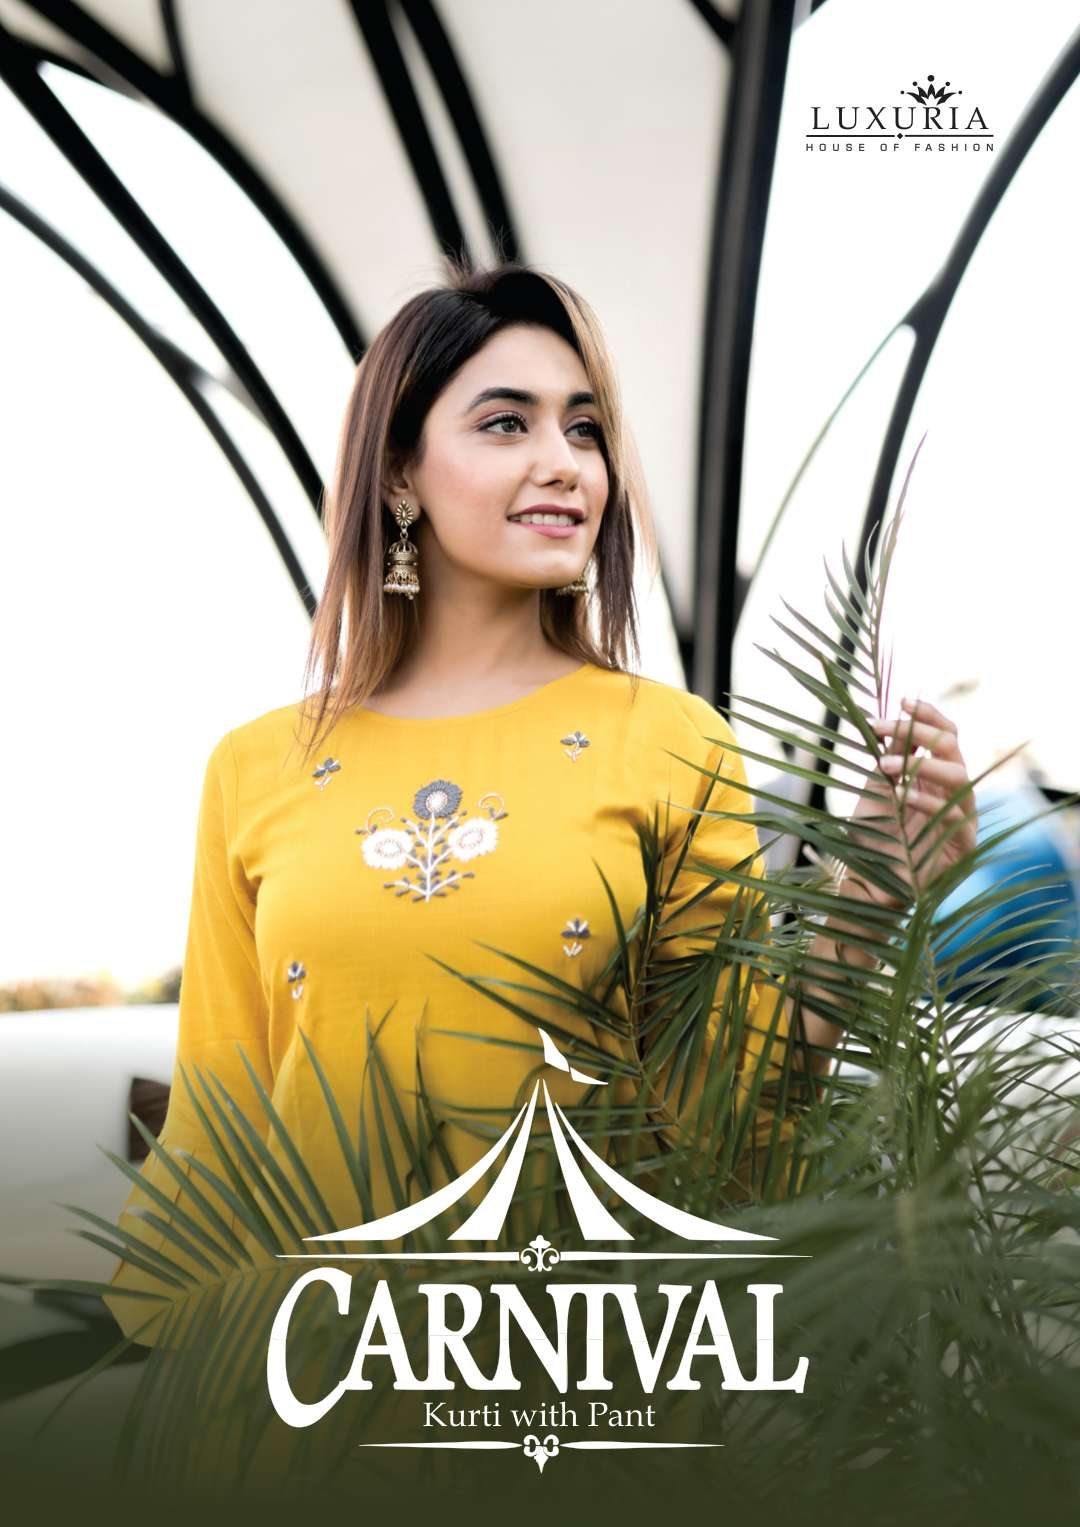 Luxuria Carnival Kurti with Pant Wholesale Catalog 5 Pcs 1 - Luxuria Carnival Kurti with Pant Wholesale Catalog 5 Pcs